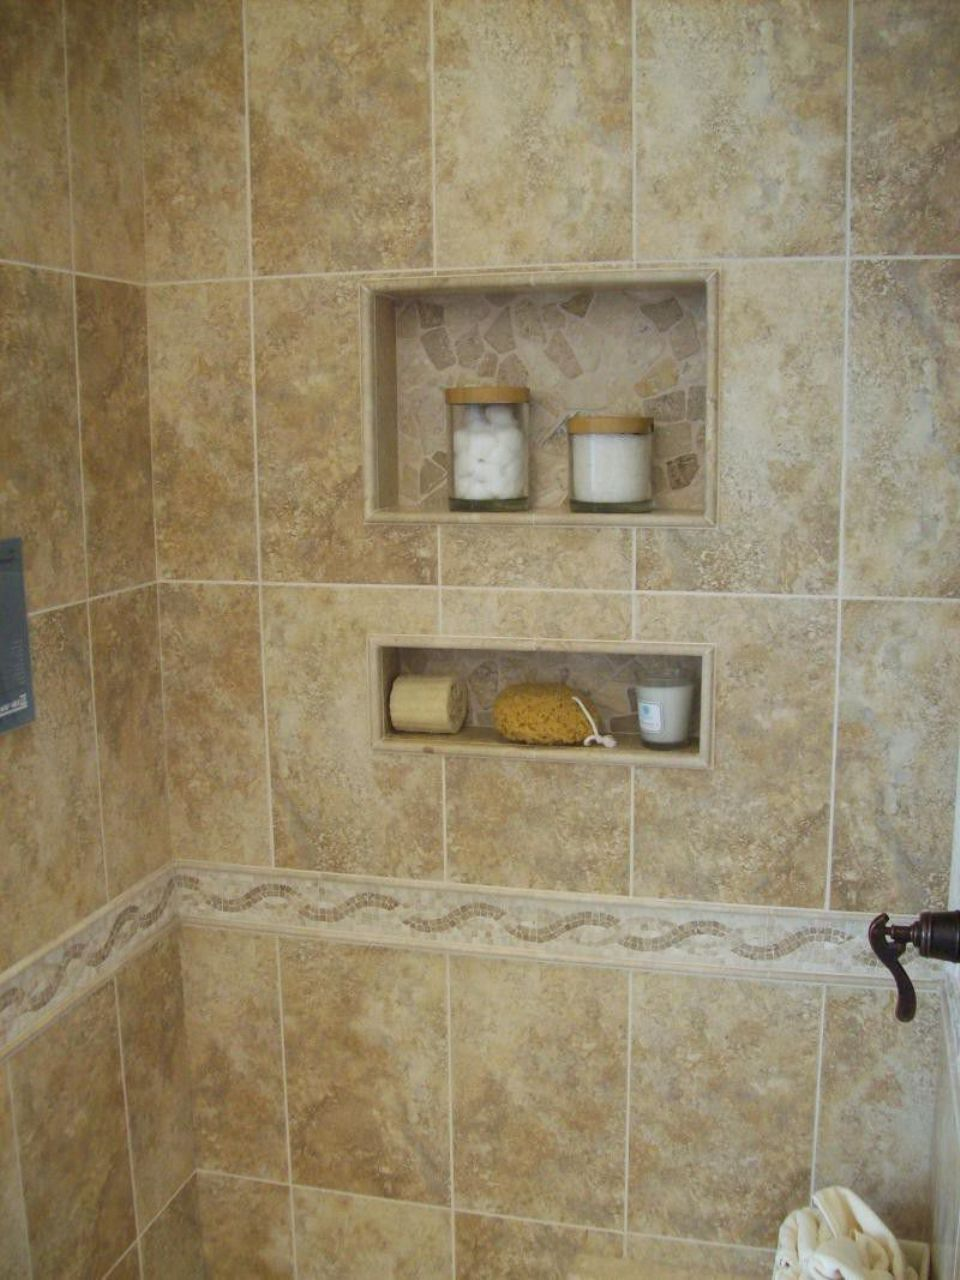 Bathroom Tile Ideas For Small Showers Design That Work Magnificent Ceramic Tile Ideas For Small Bathrooms Design Inspiration